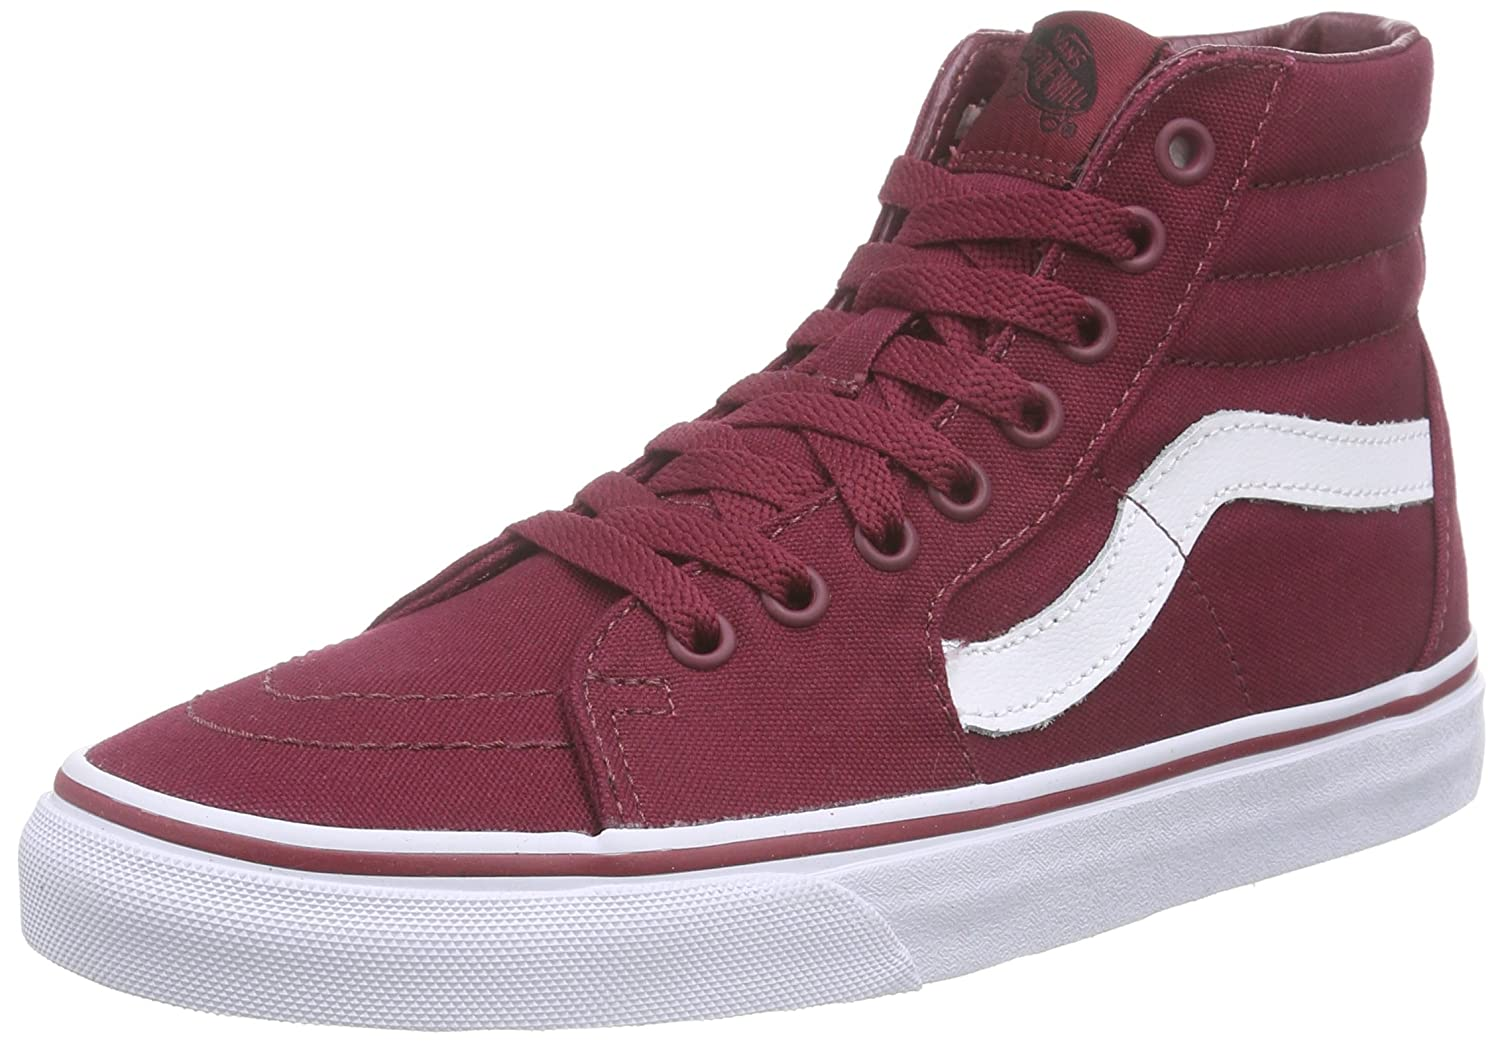 Vans Sk8-Hi Unisex Casual High-Top Skate Shoes, Comfortable and Durable in Signature Waffle Rubber Sole B013PU589O 8 B(M) US|Cordovan/True White